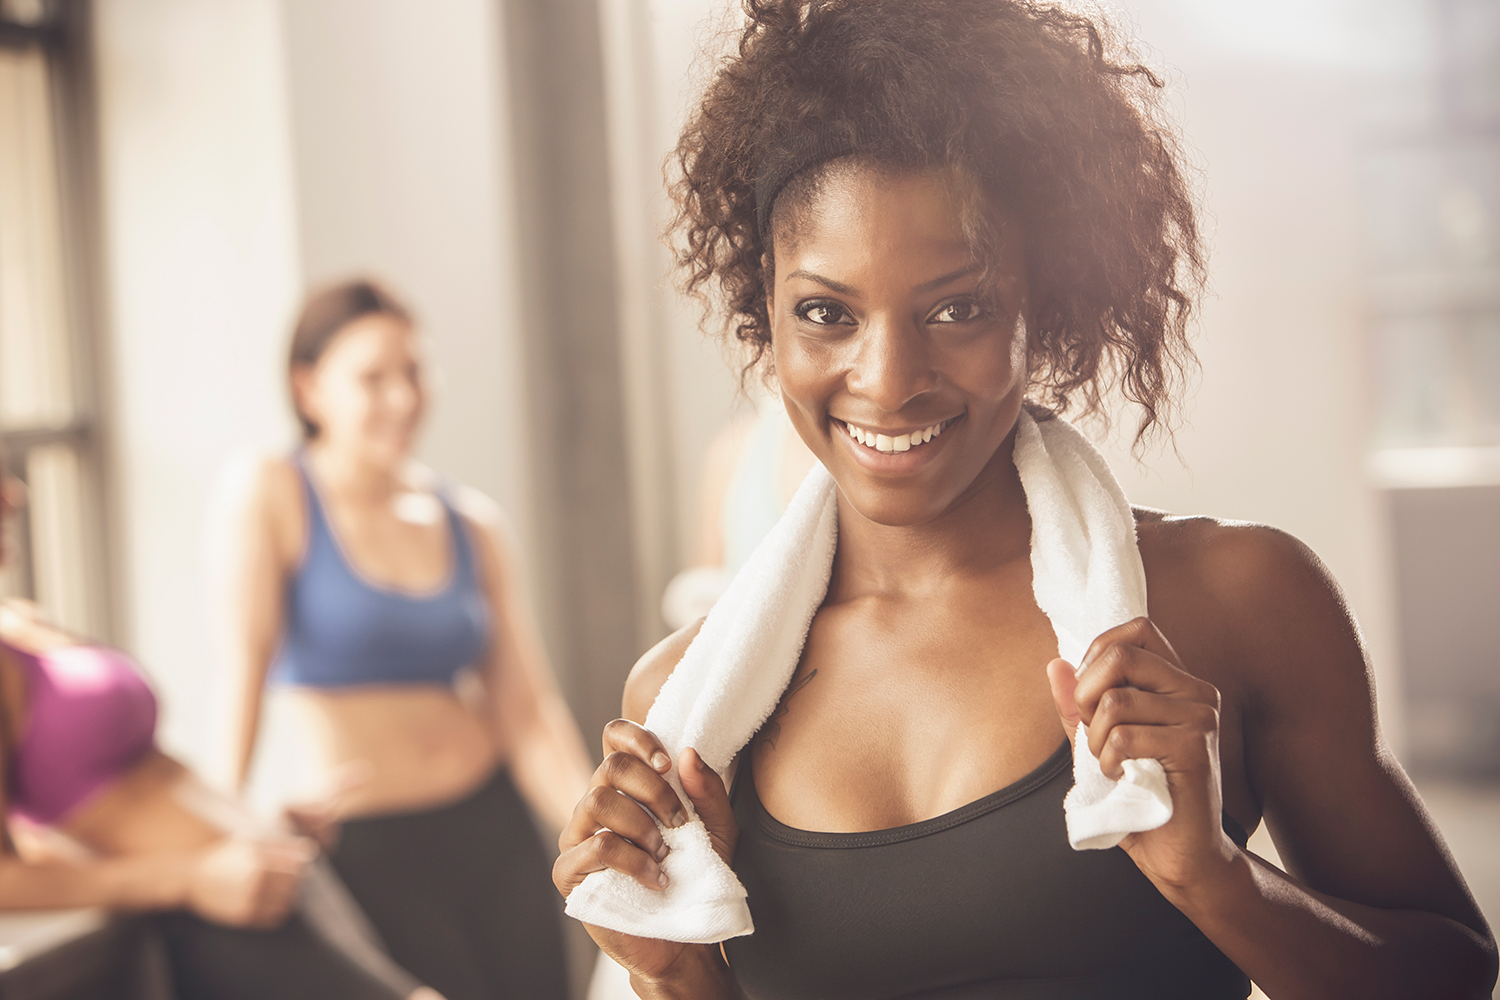 Woman Smiling and Working Out